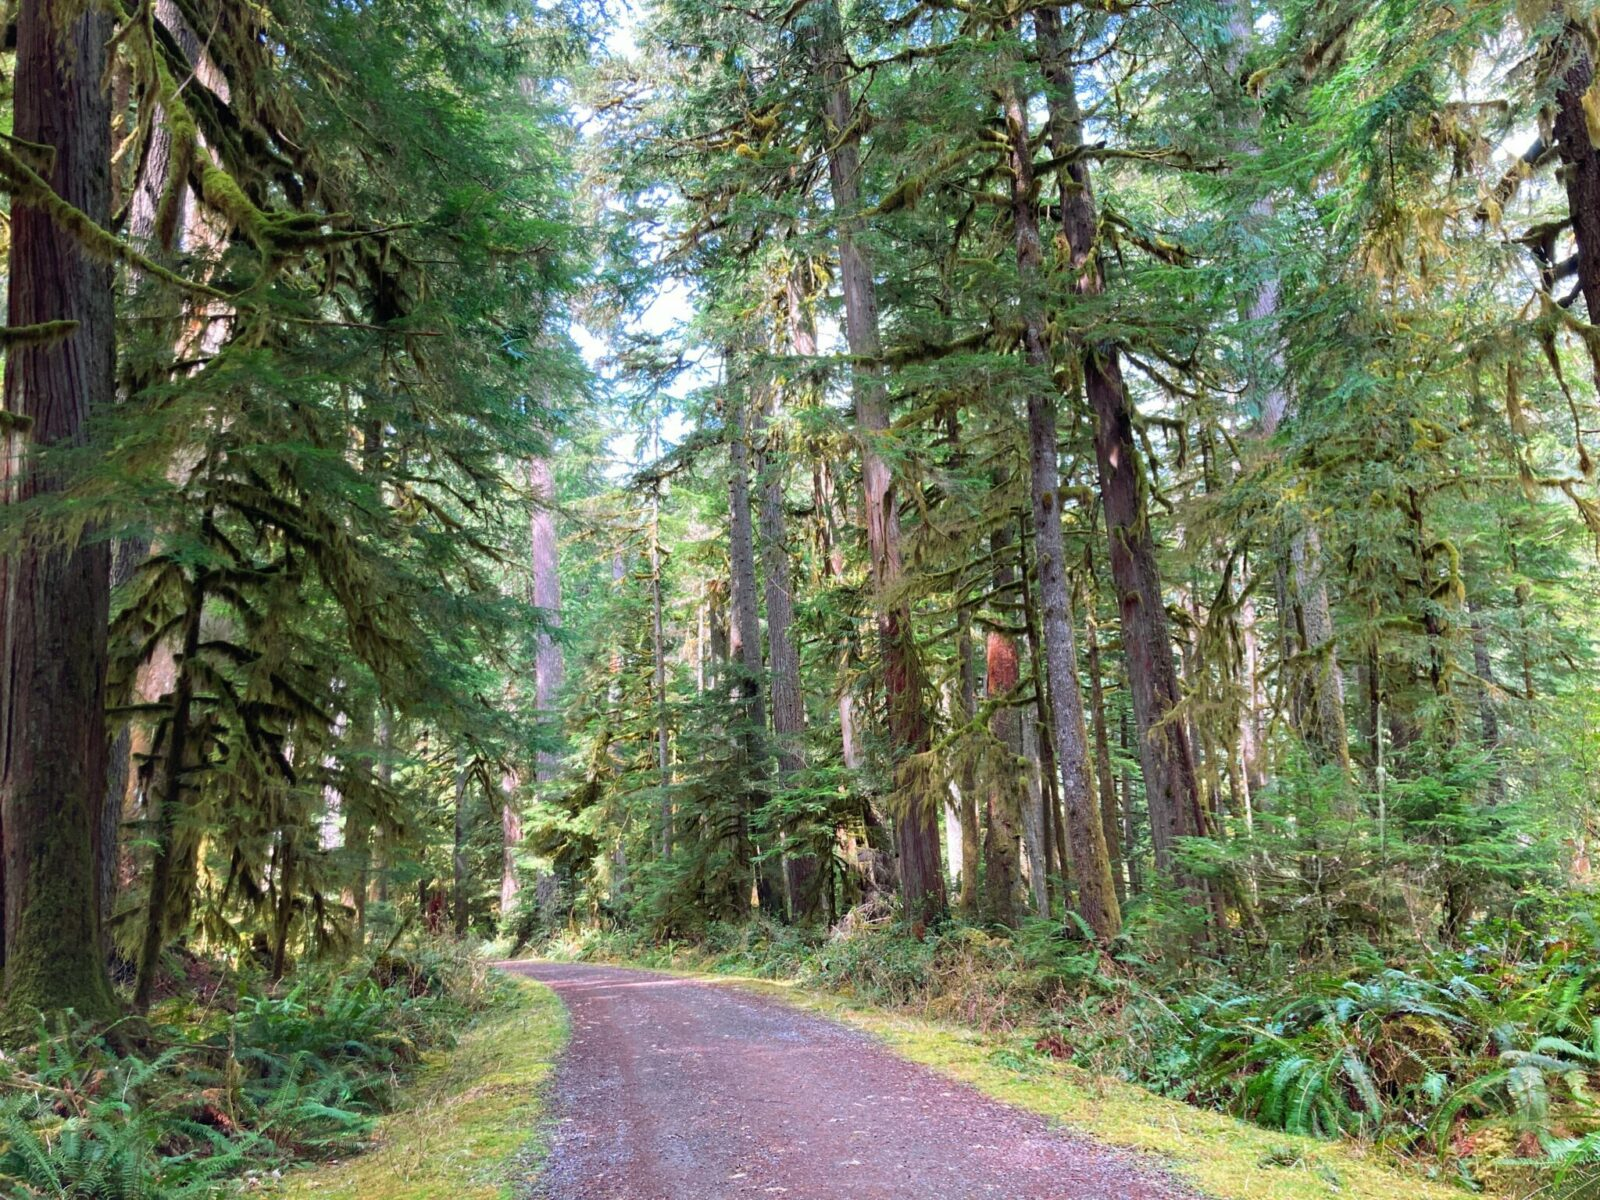 The Carbon River Trail is a gentle, mostly graveled, wide trail. Here the trail goes through a forest of evergreen trees, moss and ferns